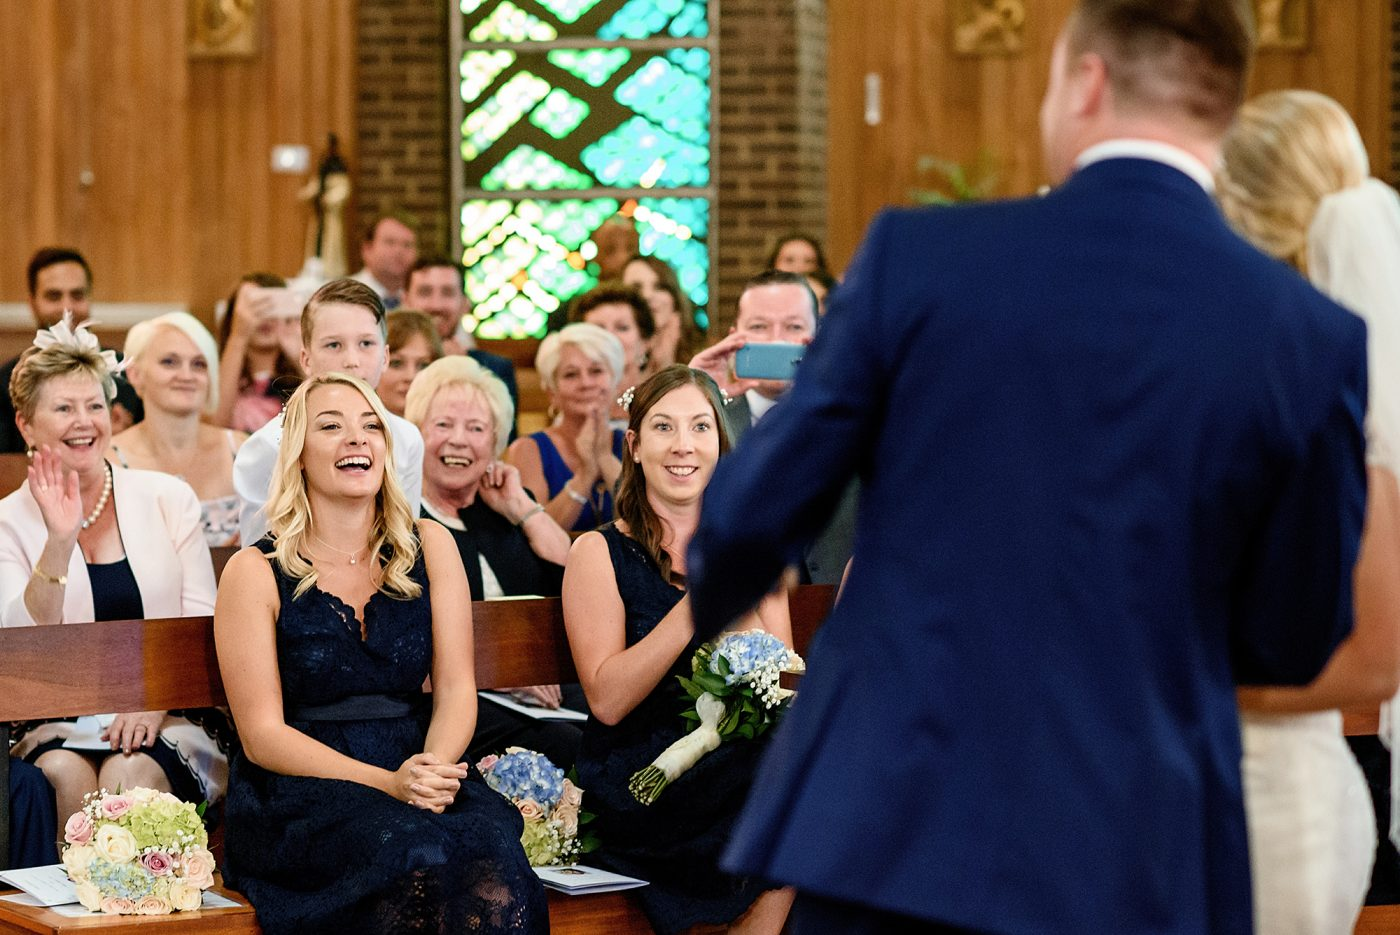 guests cheering during service